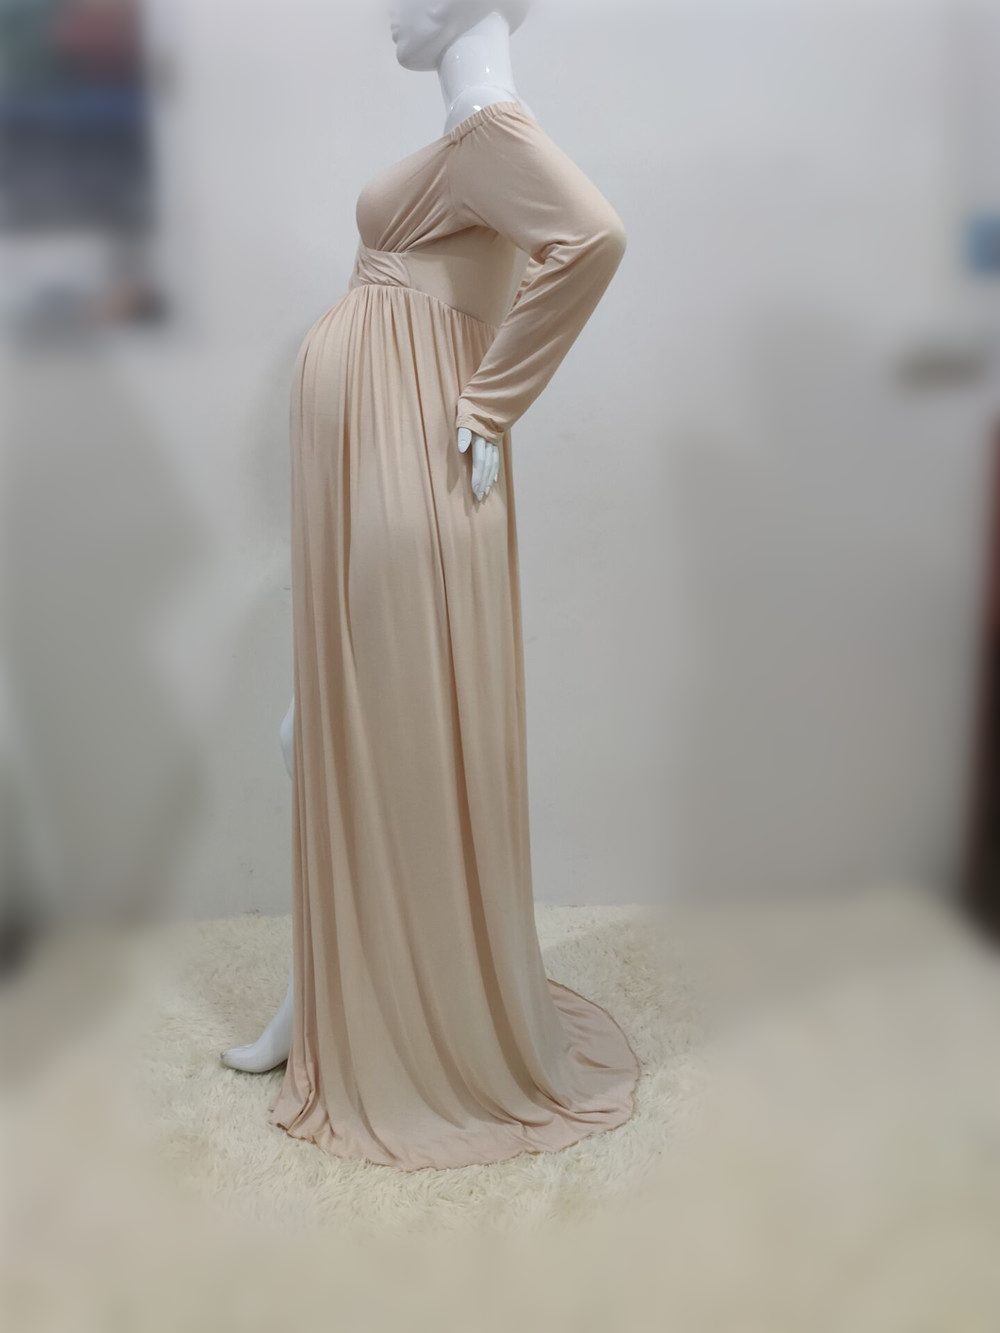 Long Shoulderless Maternity Photography Props Dresses Sexy Split Front Pregnancy Dress Photo Shoot For Pregnant Women Maxi Gown (2)